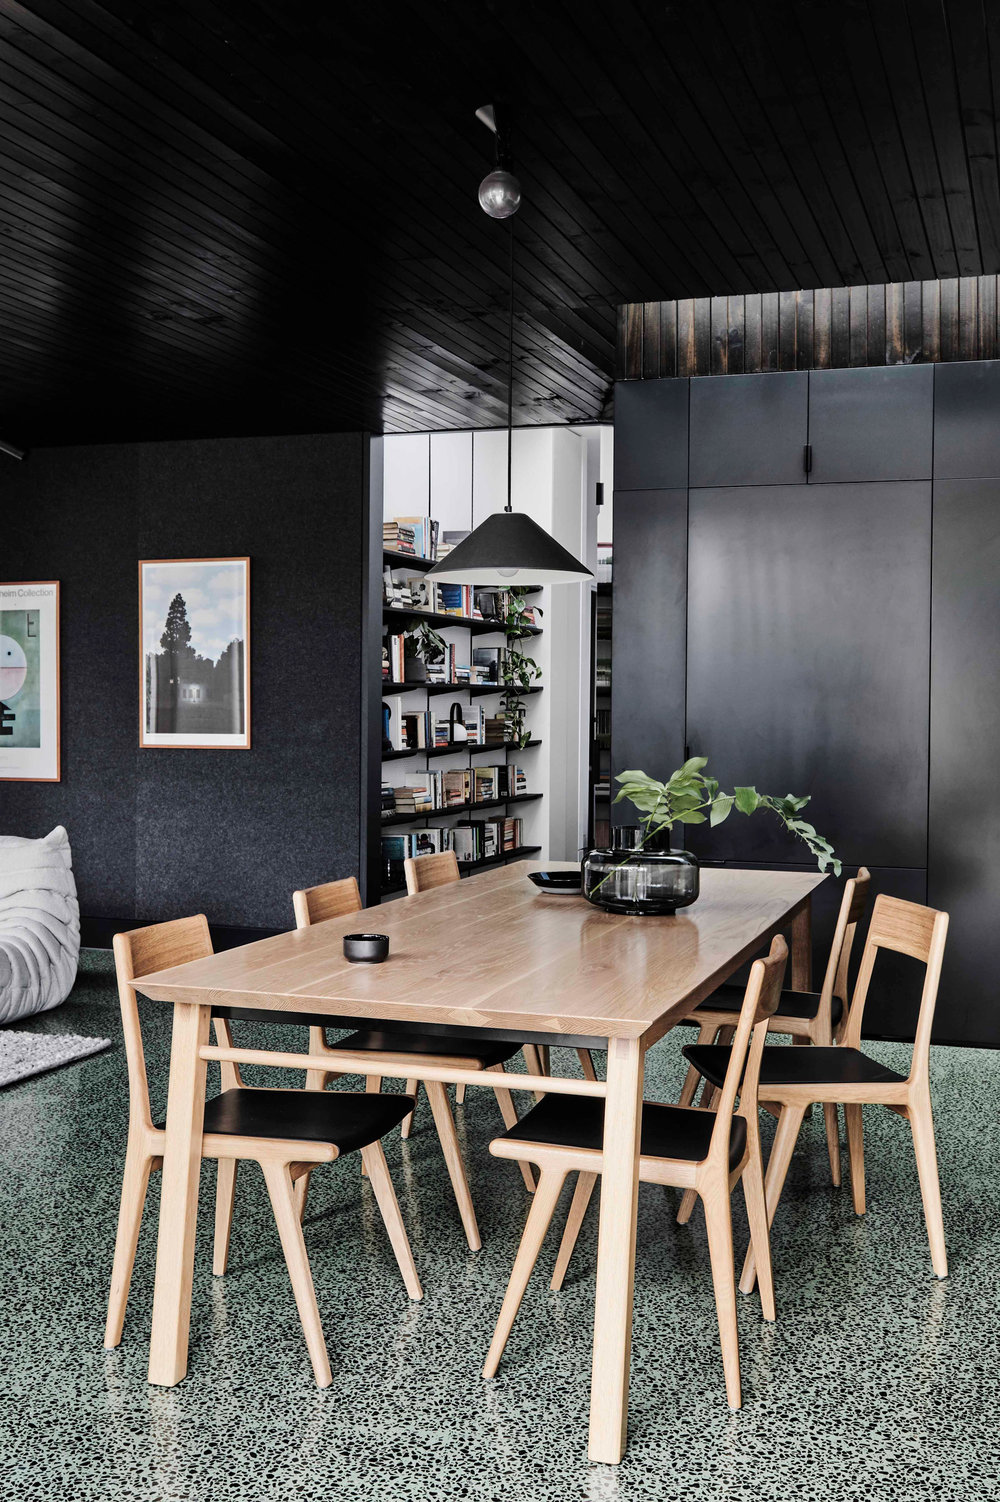 brunswick-west-house-taylor-knights-architecture-residential-extensions-australia-victoria_dezeen_1704_col_5.jpg